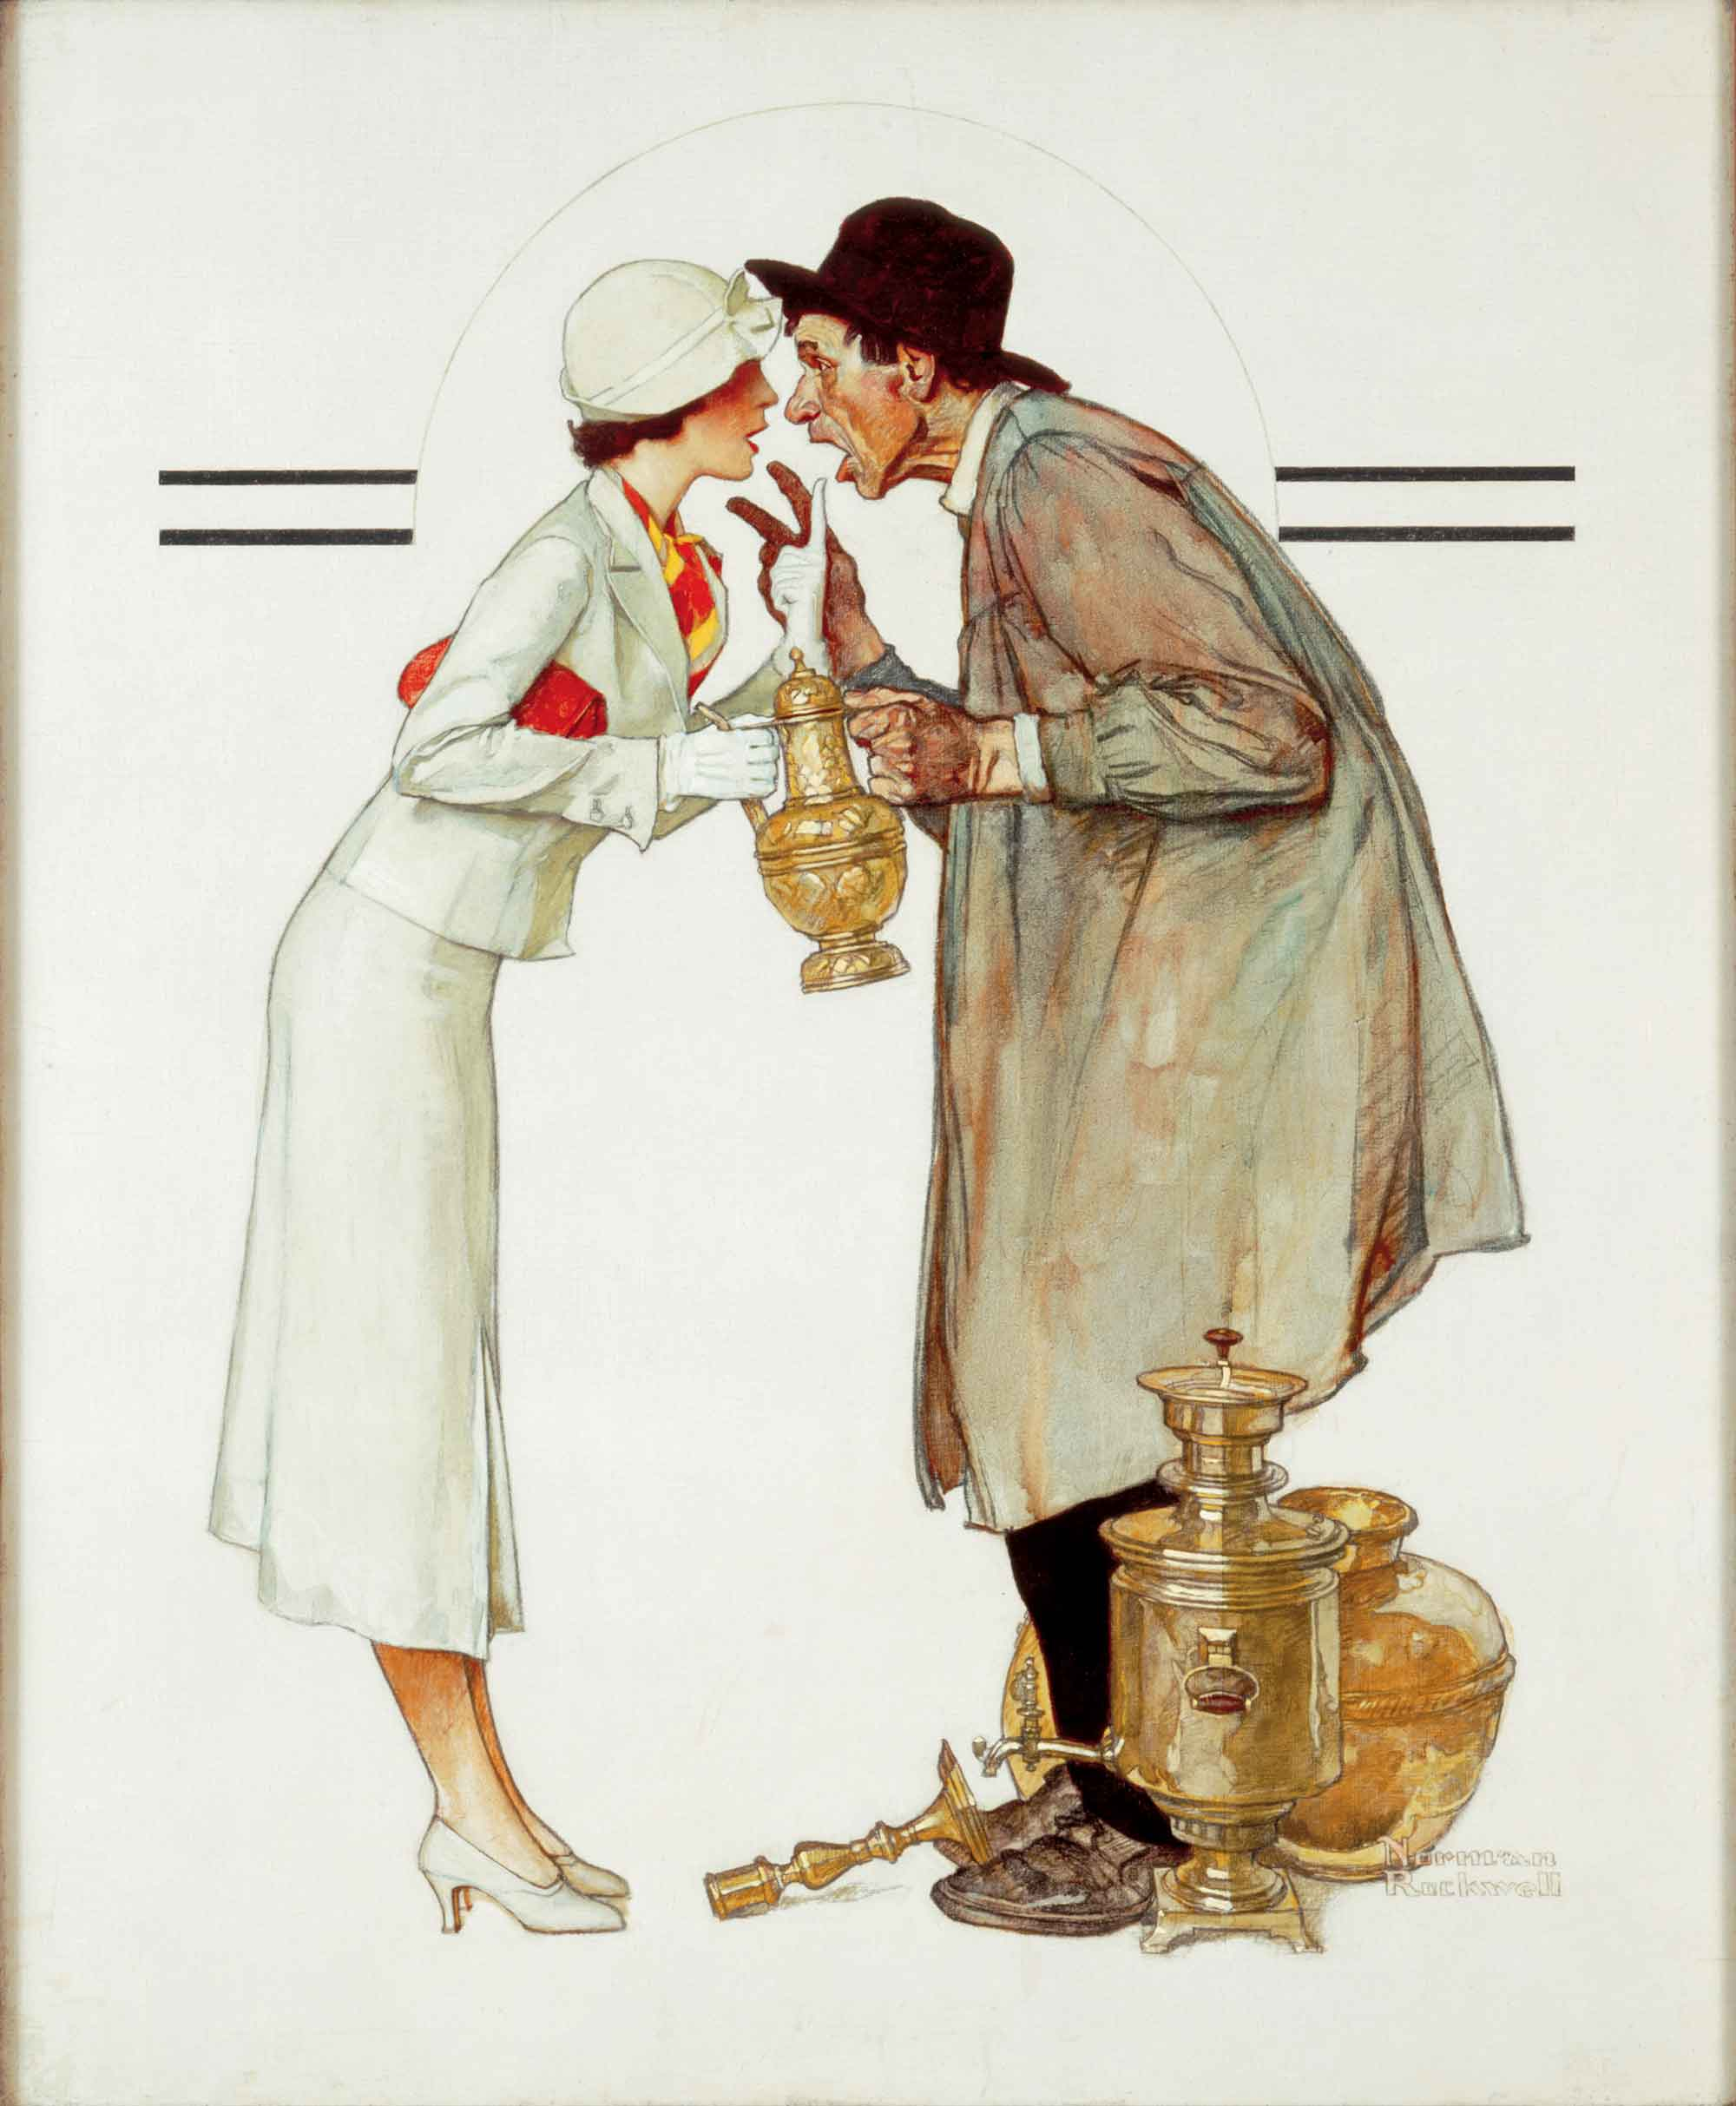 01 - Brass Merchant - Norman Rockwell